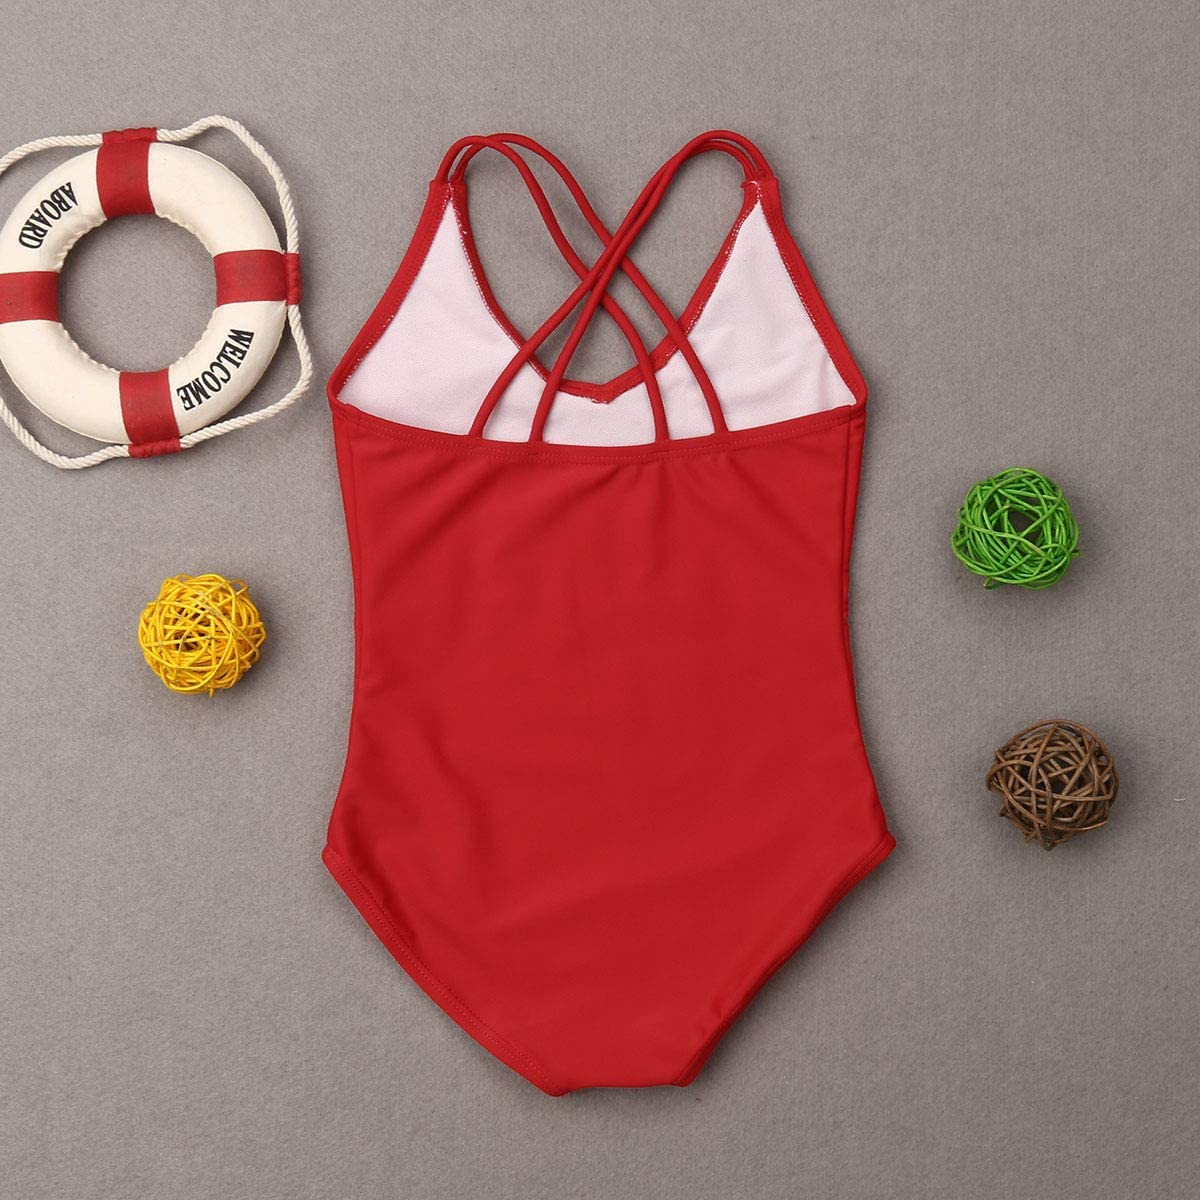 Mommy and Me Swimsuit Family Matching Baby Girls Women Letter Print One Piece Swimwear Bathing Suit Red, Daughter 2-3T